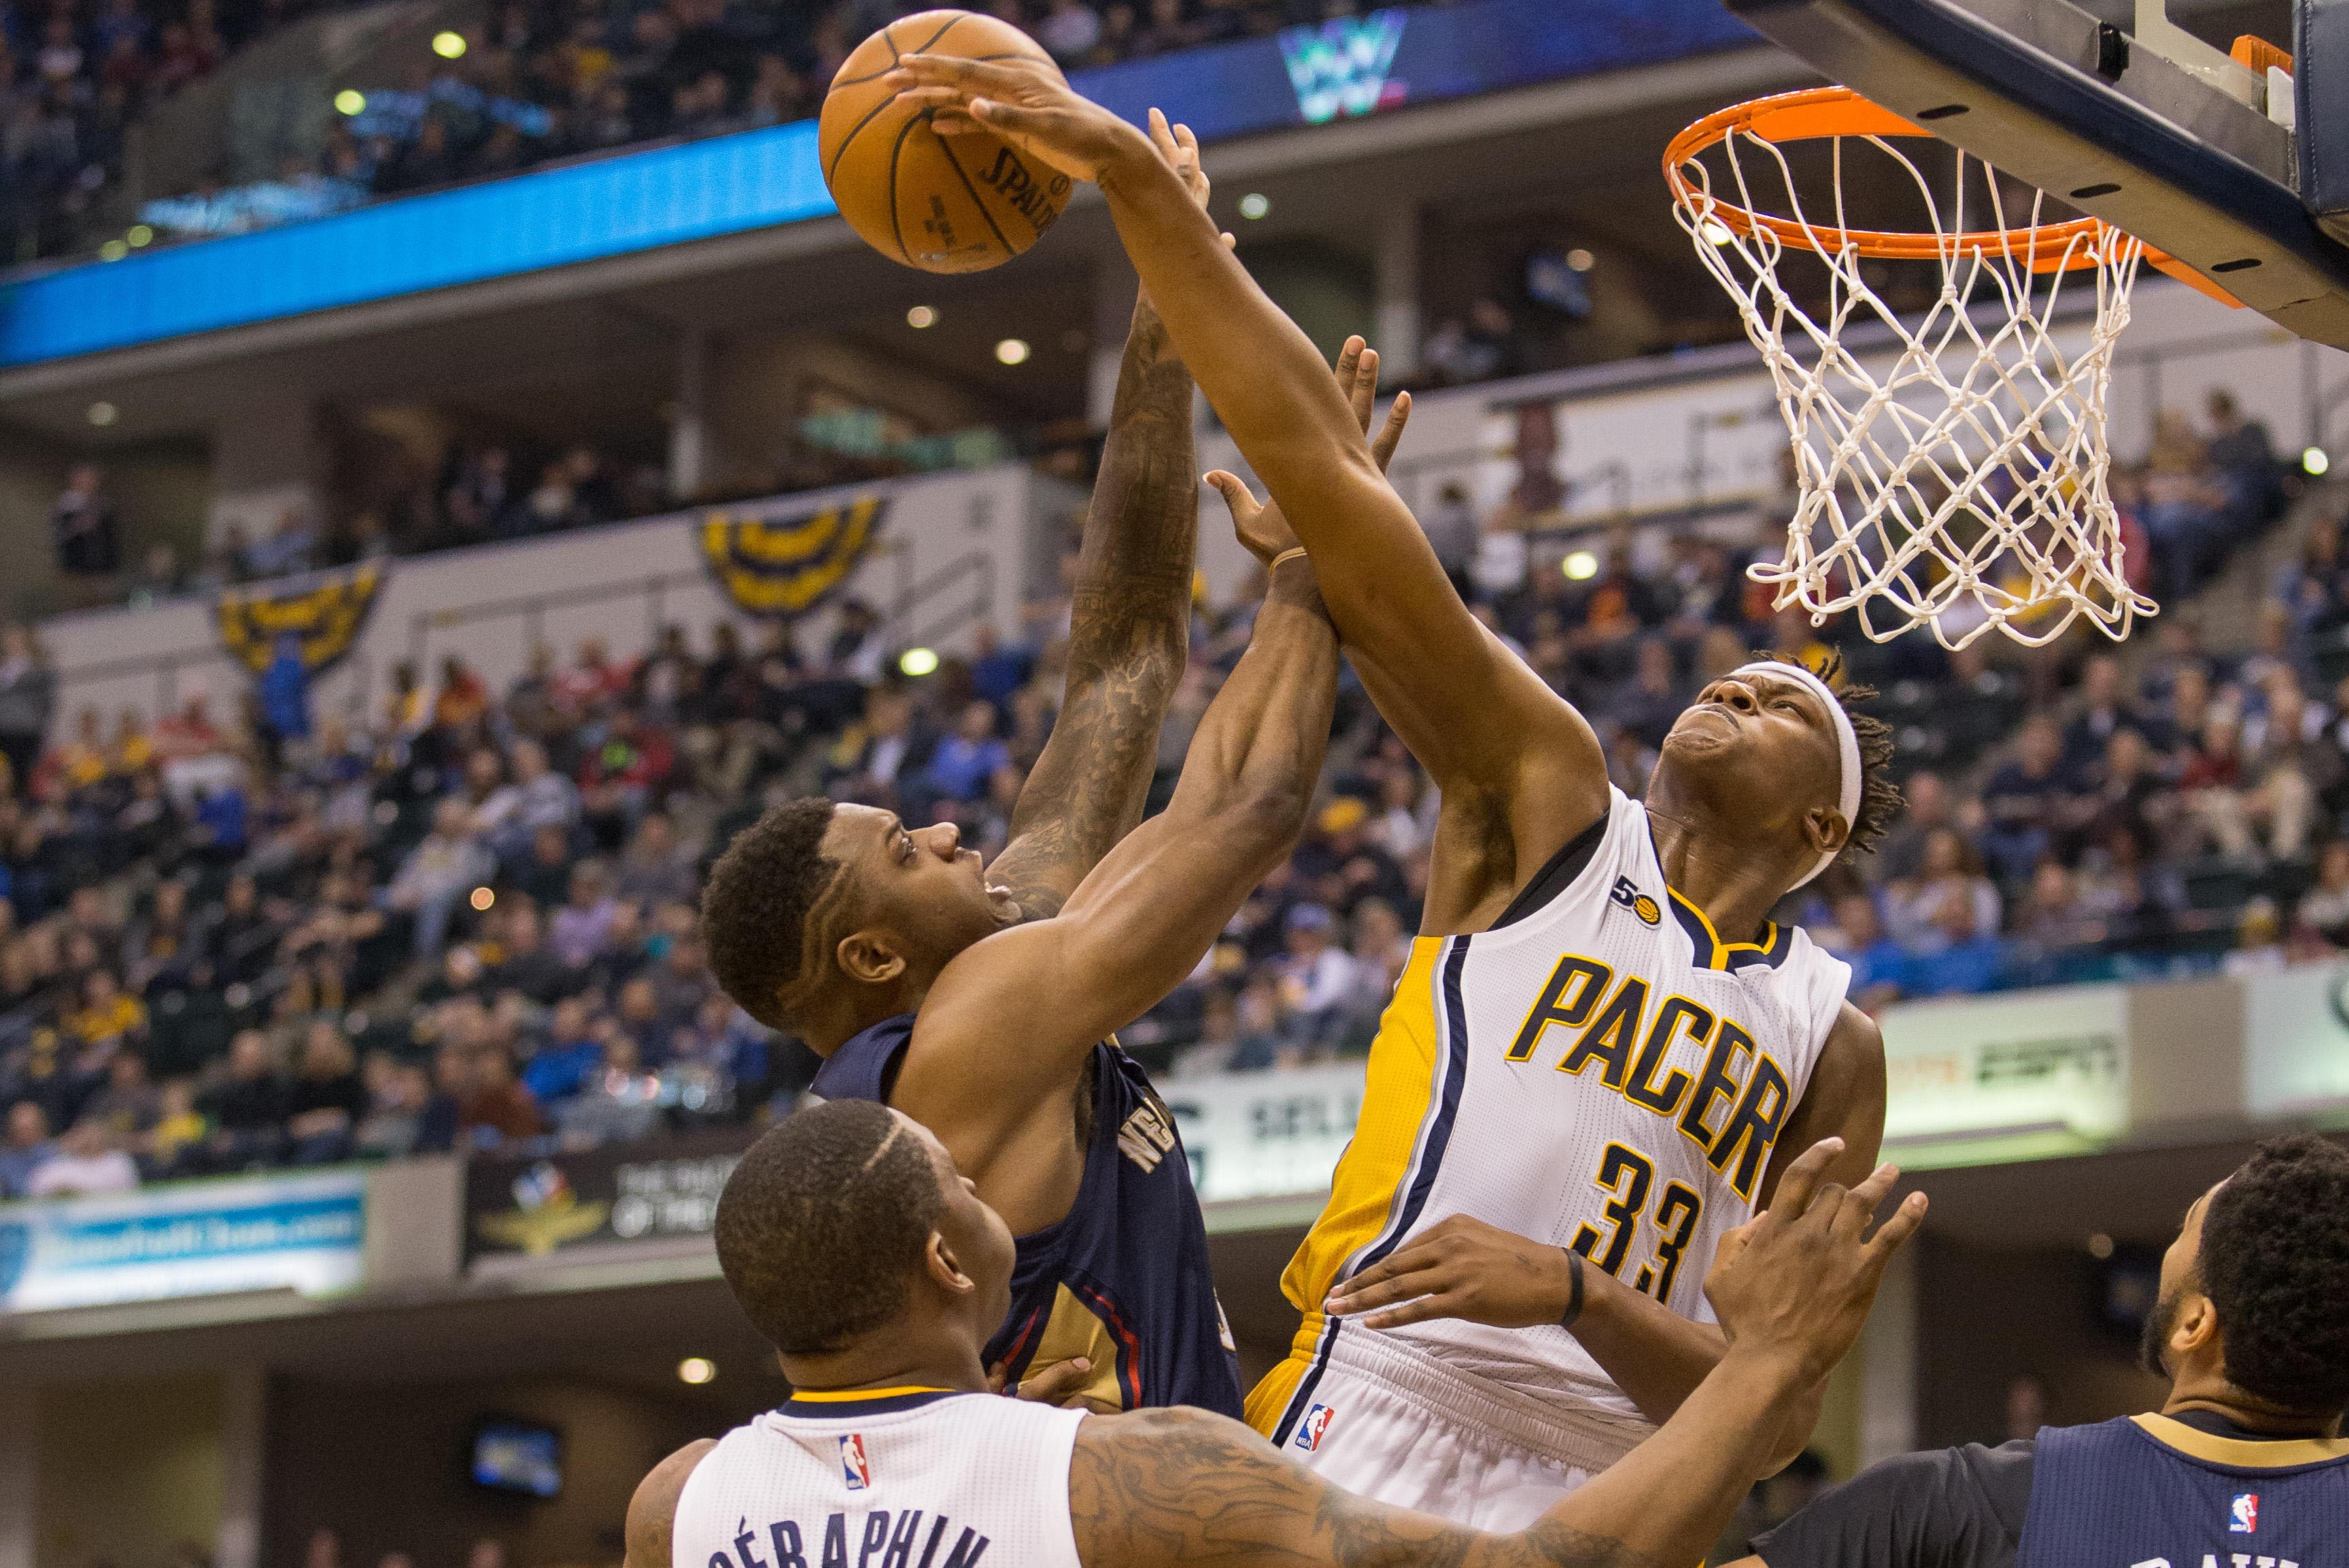 Jan 16, 2017; Indianapolis, IN, USA; Indiana Pacers center Myles Turner (33) blocks the shot of New Orleans Pelicans forward Terrence Jones (9) in the first half of the game at Bankers Life Fieldhouse. Mandatory Credit: Trevor Ruszkowski-USA TODAY Sports